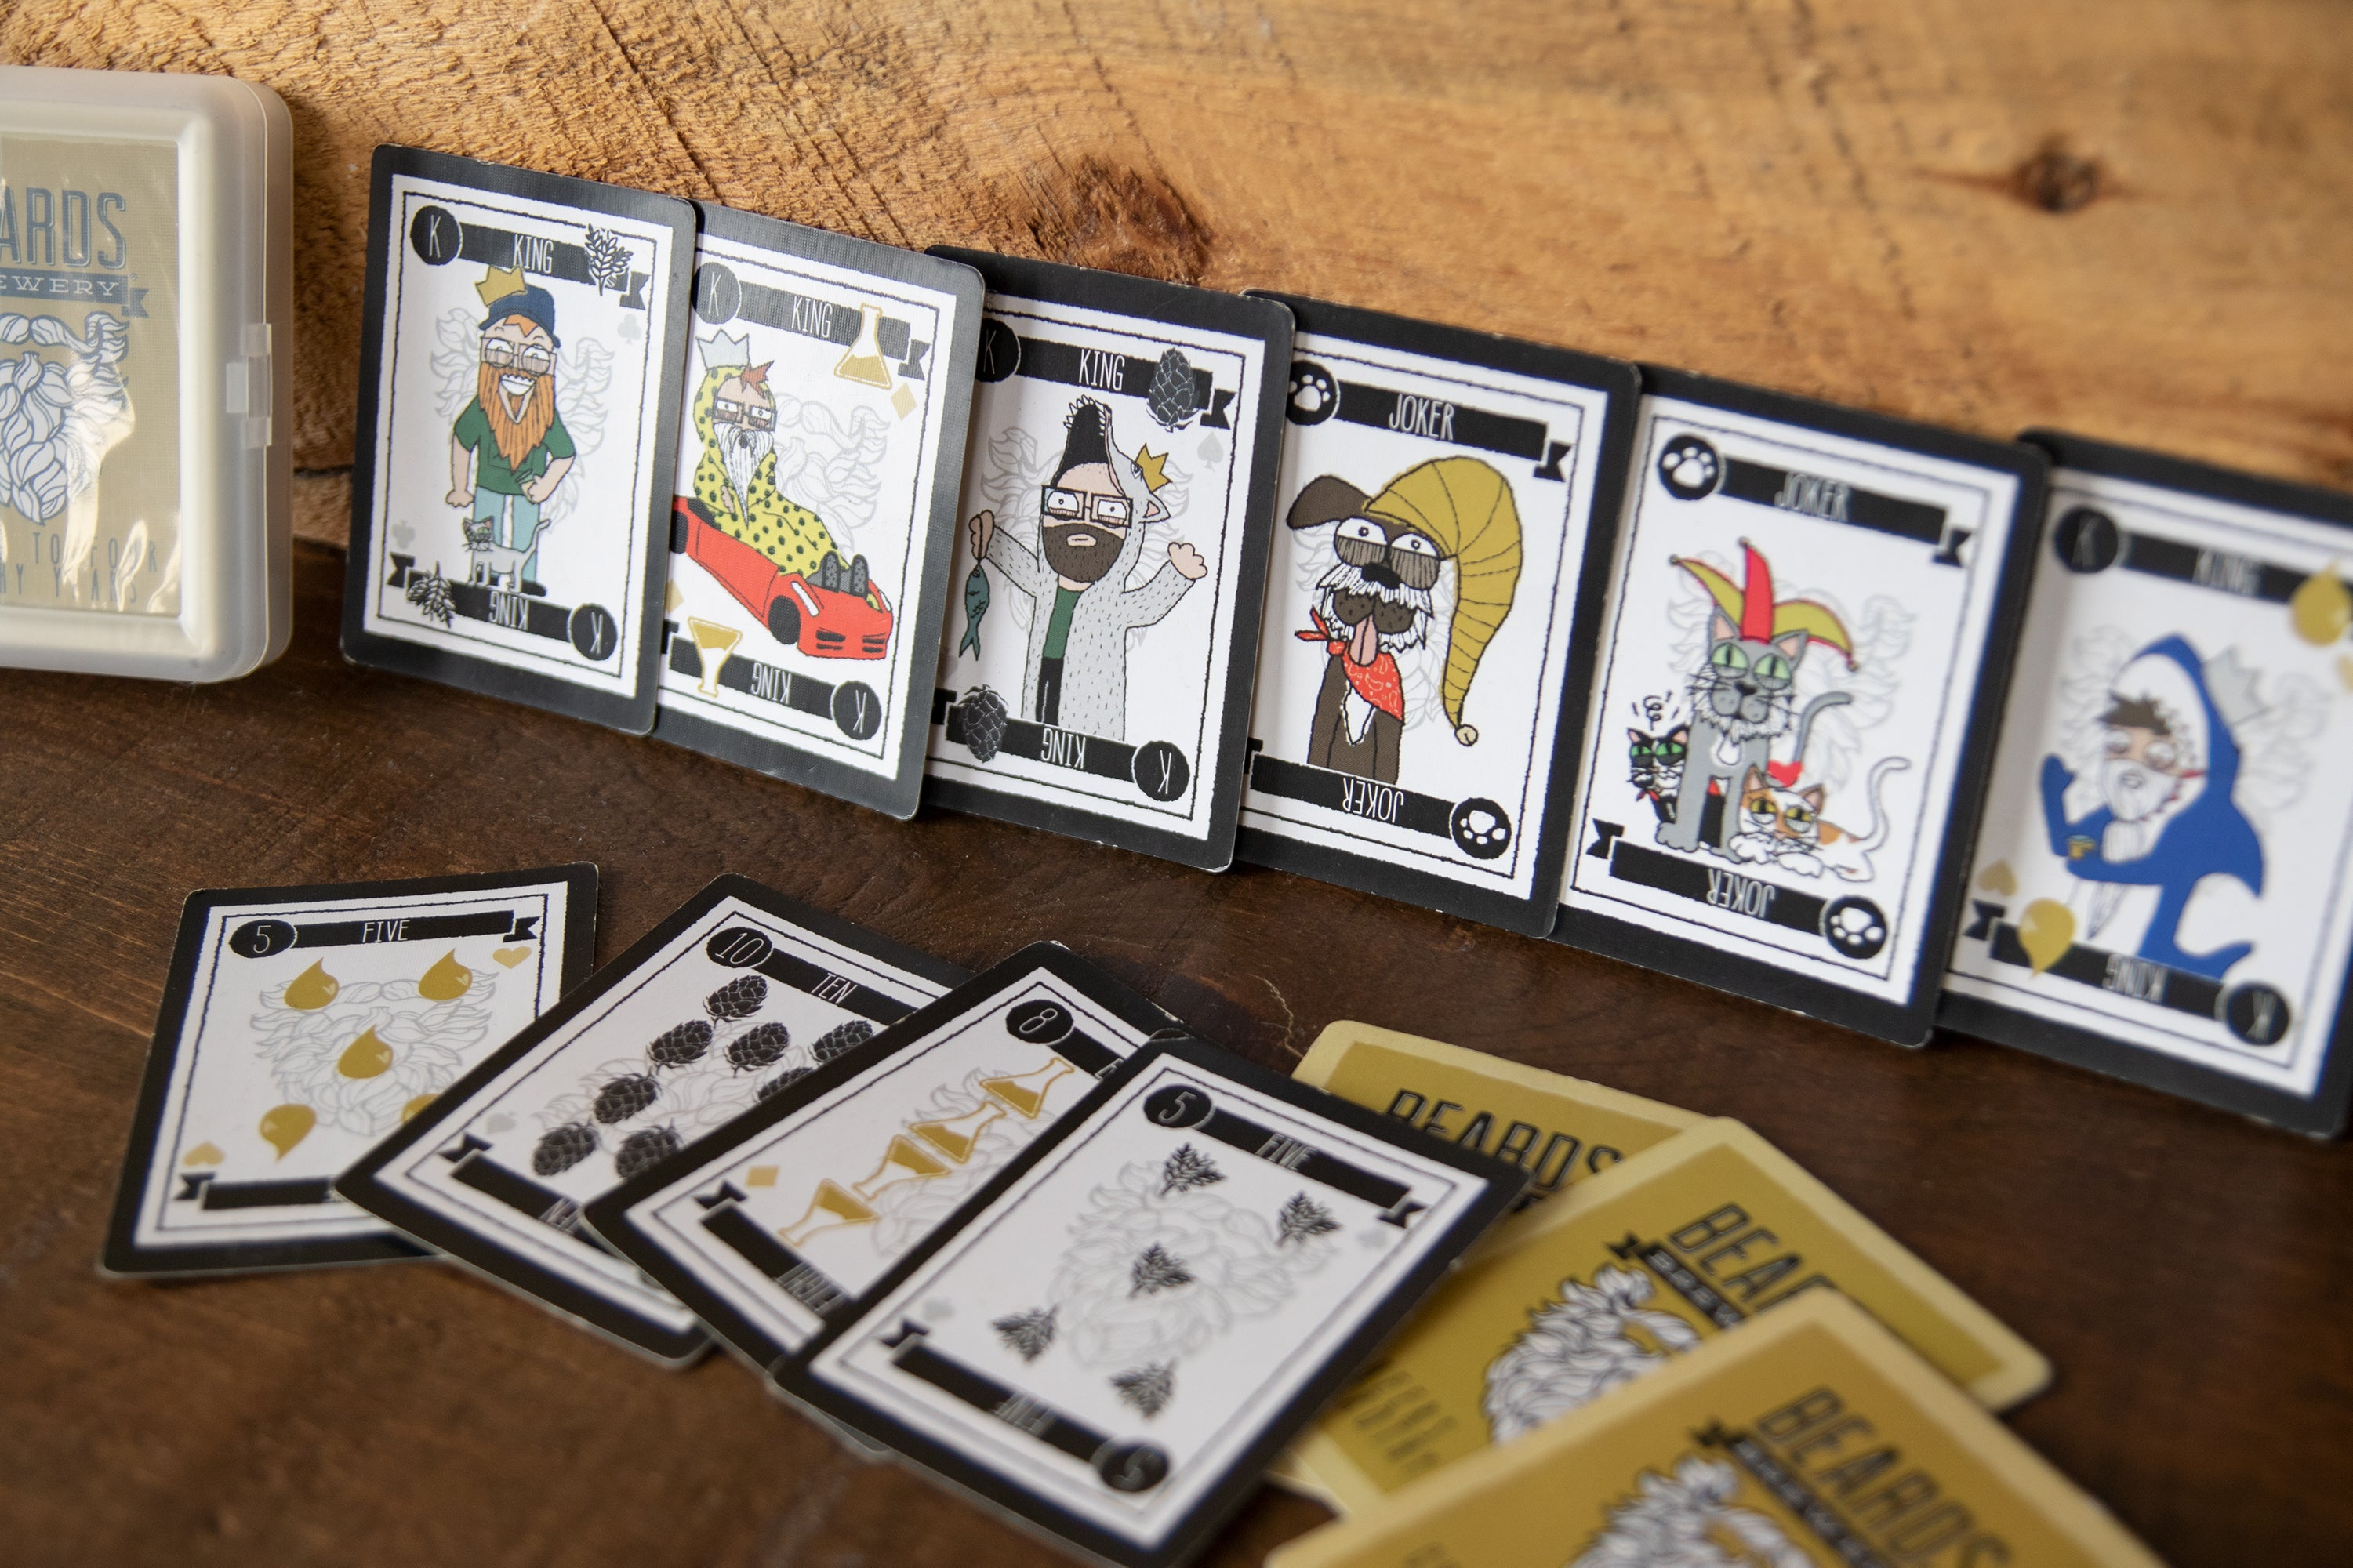 Beards 3rd Anniversary Playing Cards